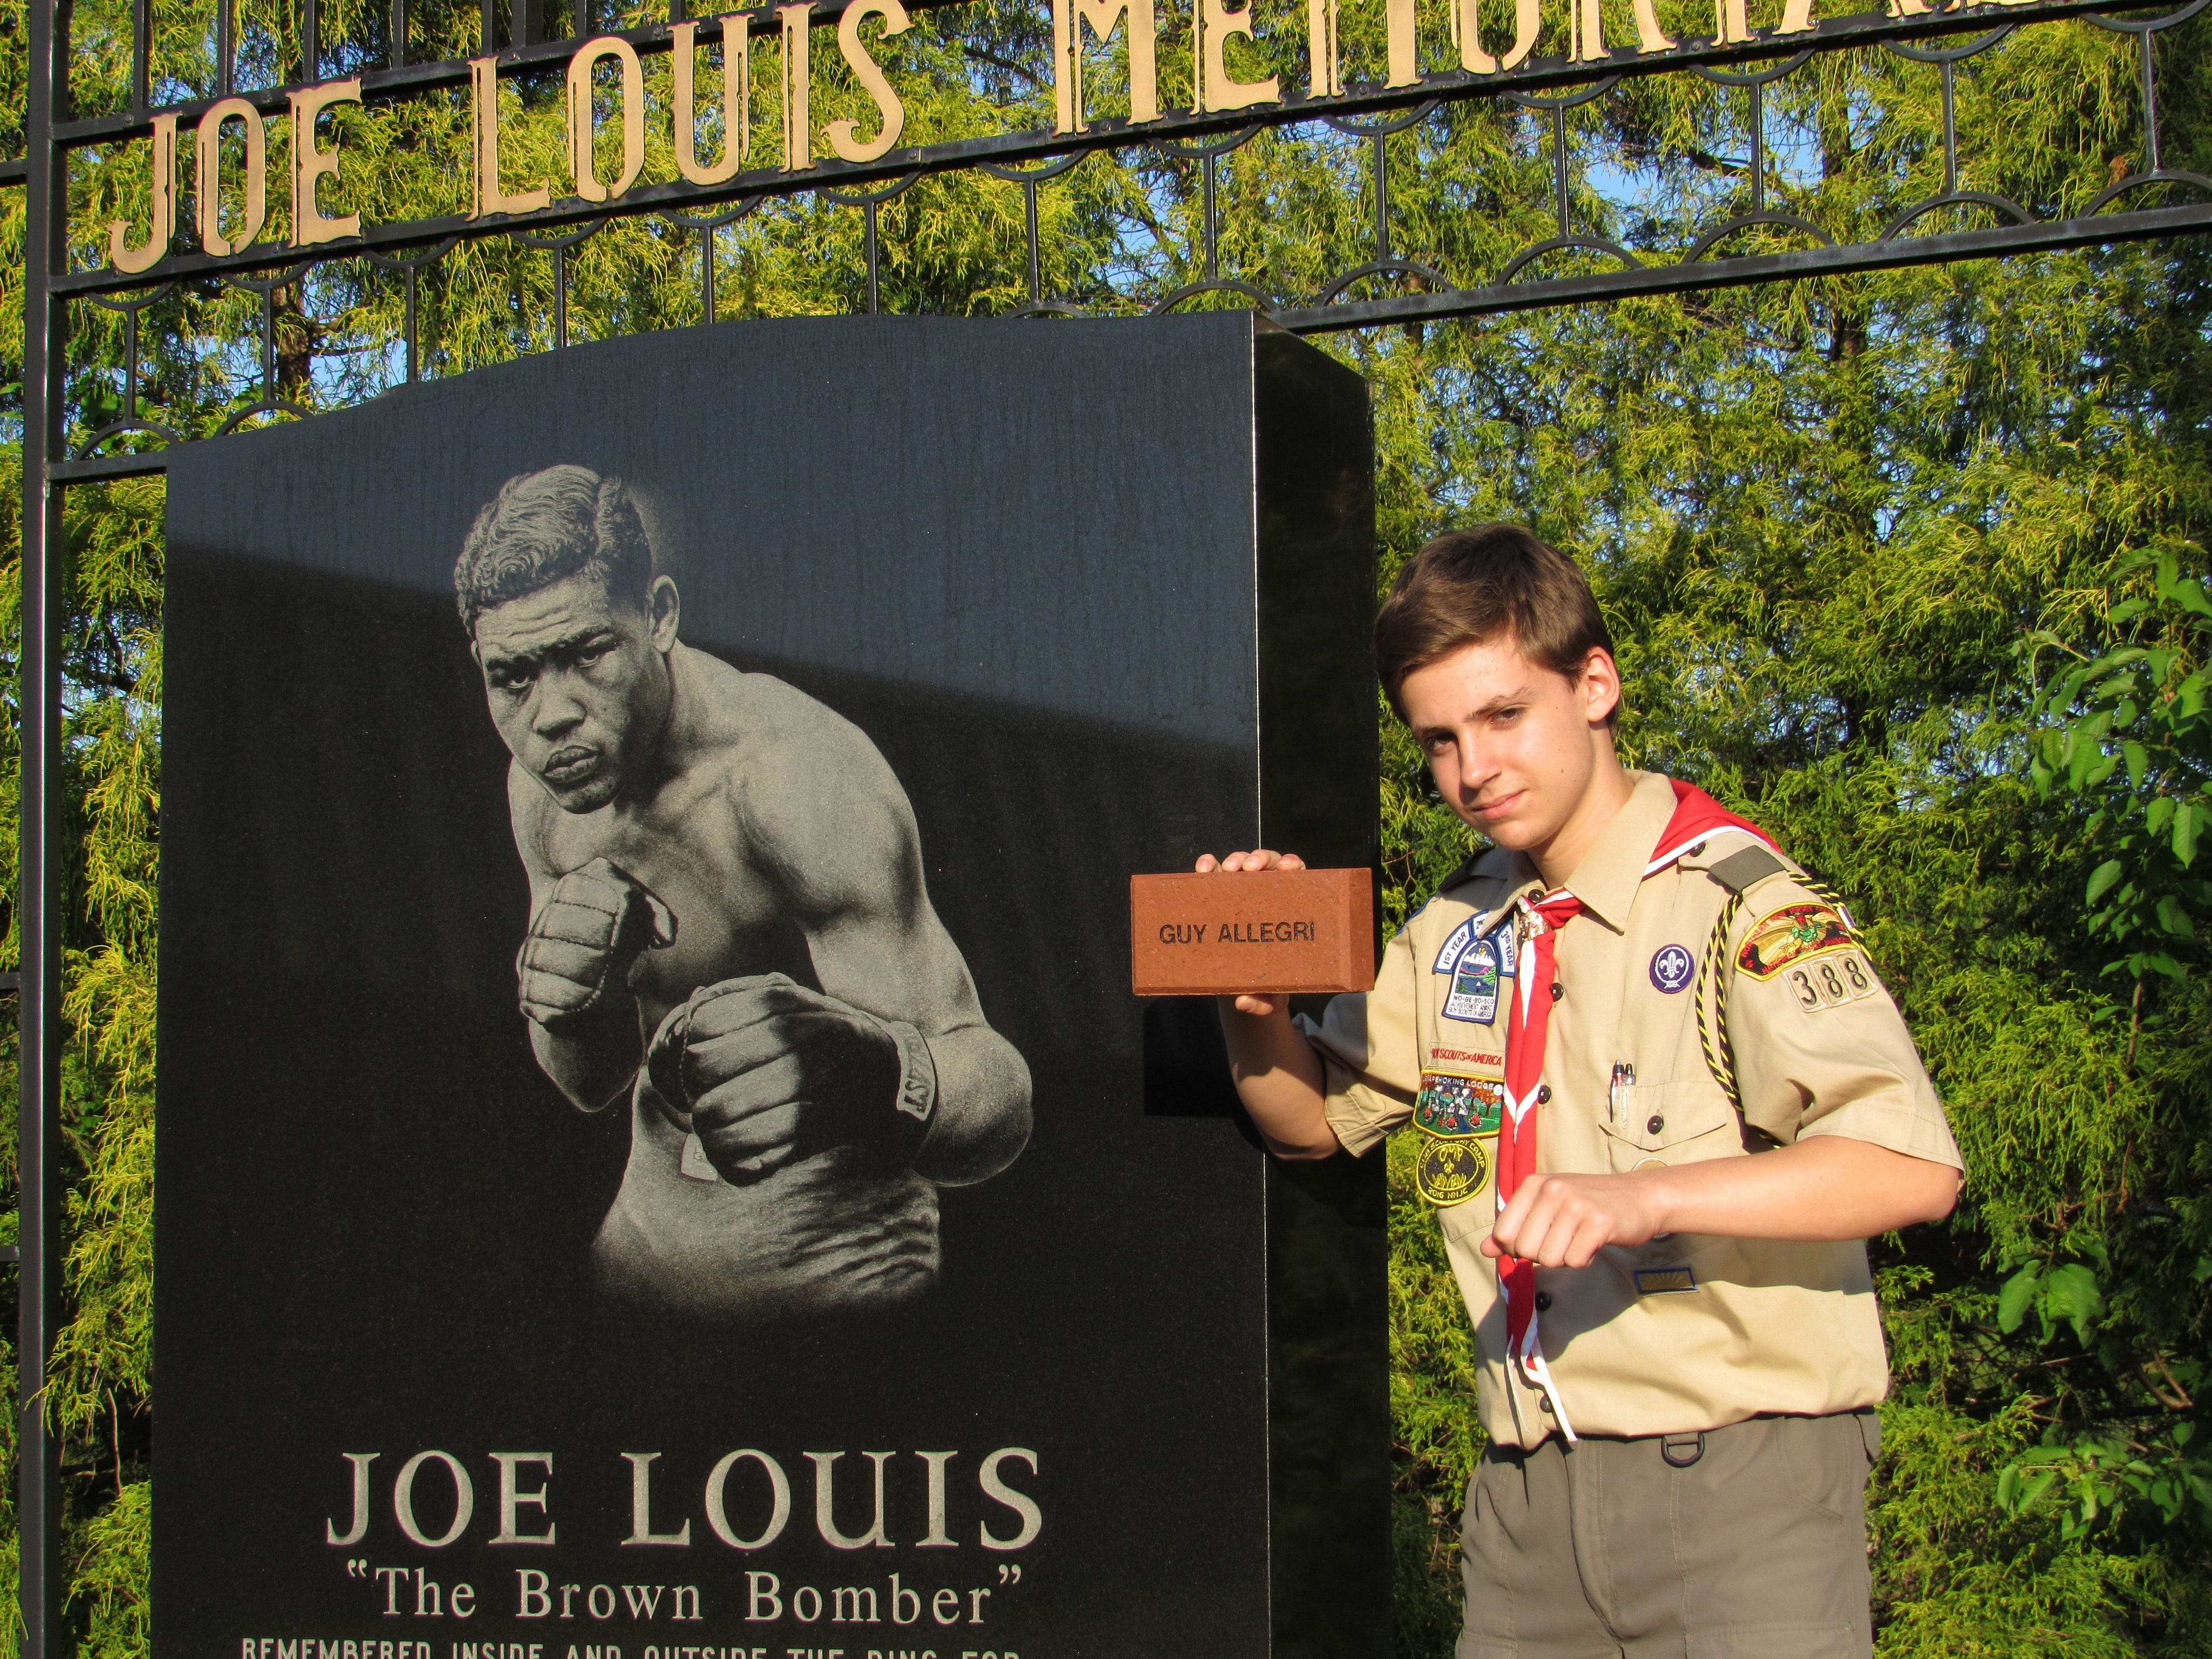 Gaetano Allegri, a Pompton Lakes High School student, is planning to enhance the town's Joe Louis Memorial Park as he endeavors to reach the Eagle Scout rank.